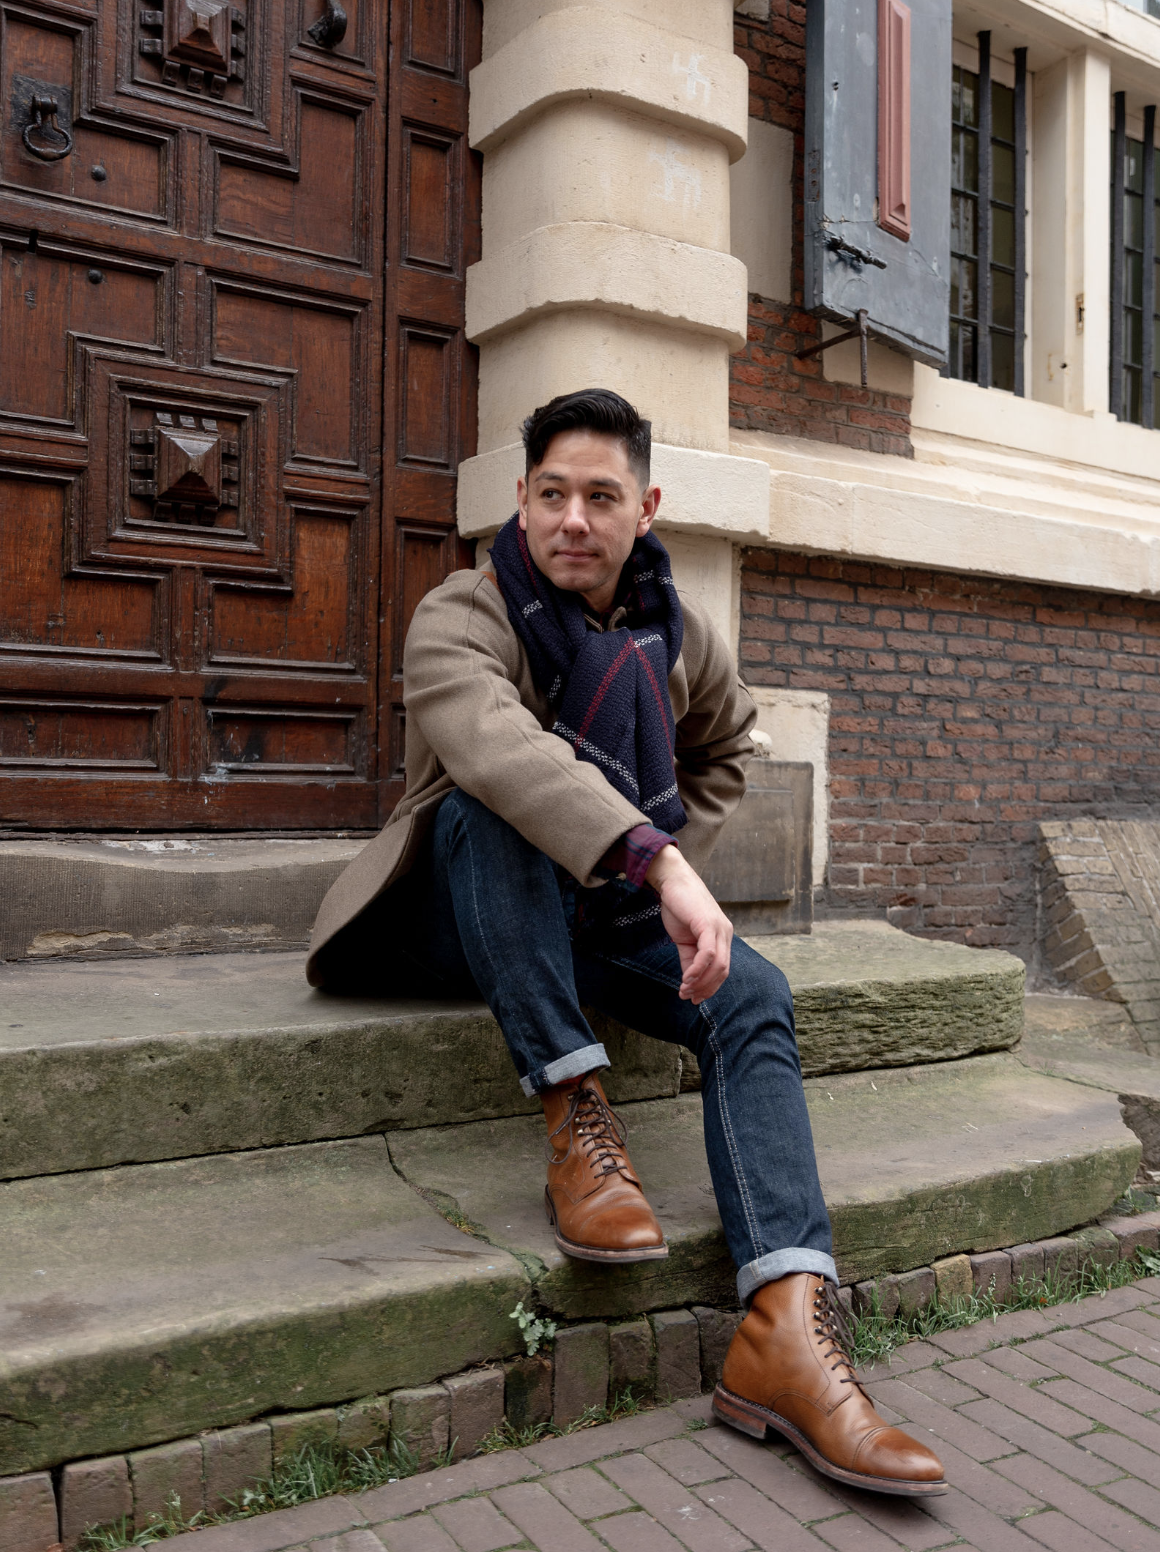 haarlem-portrait-photography-2.png